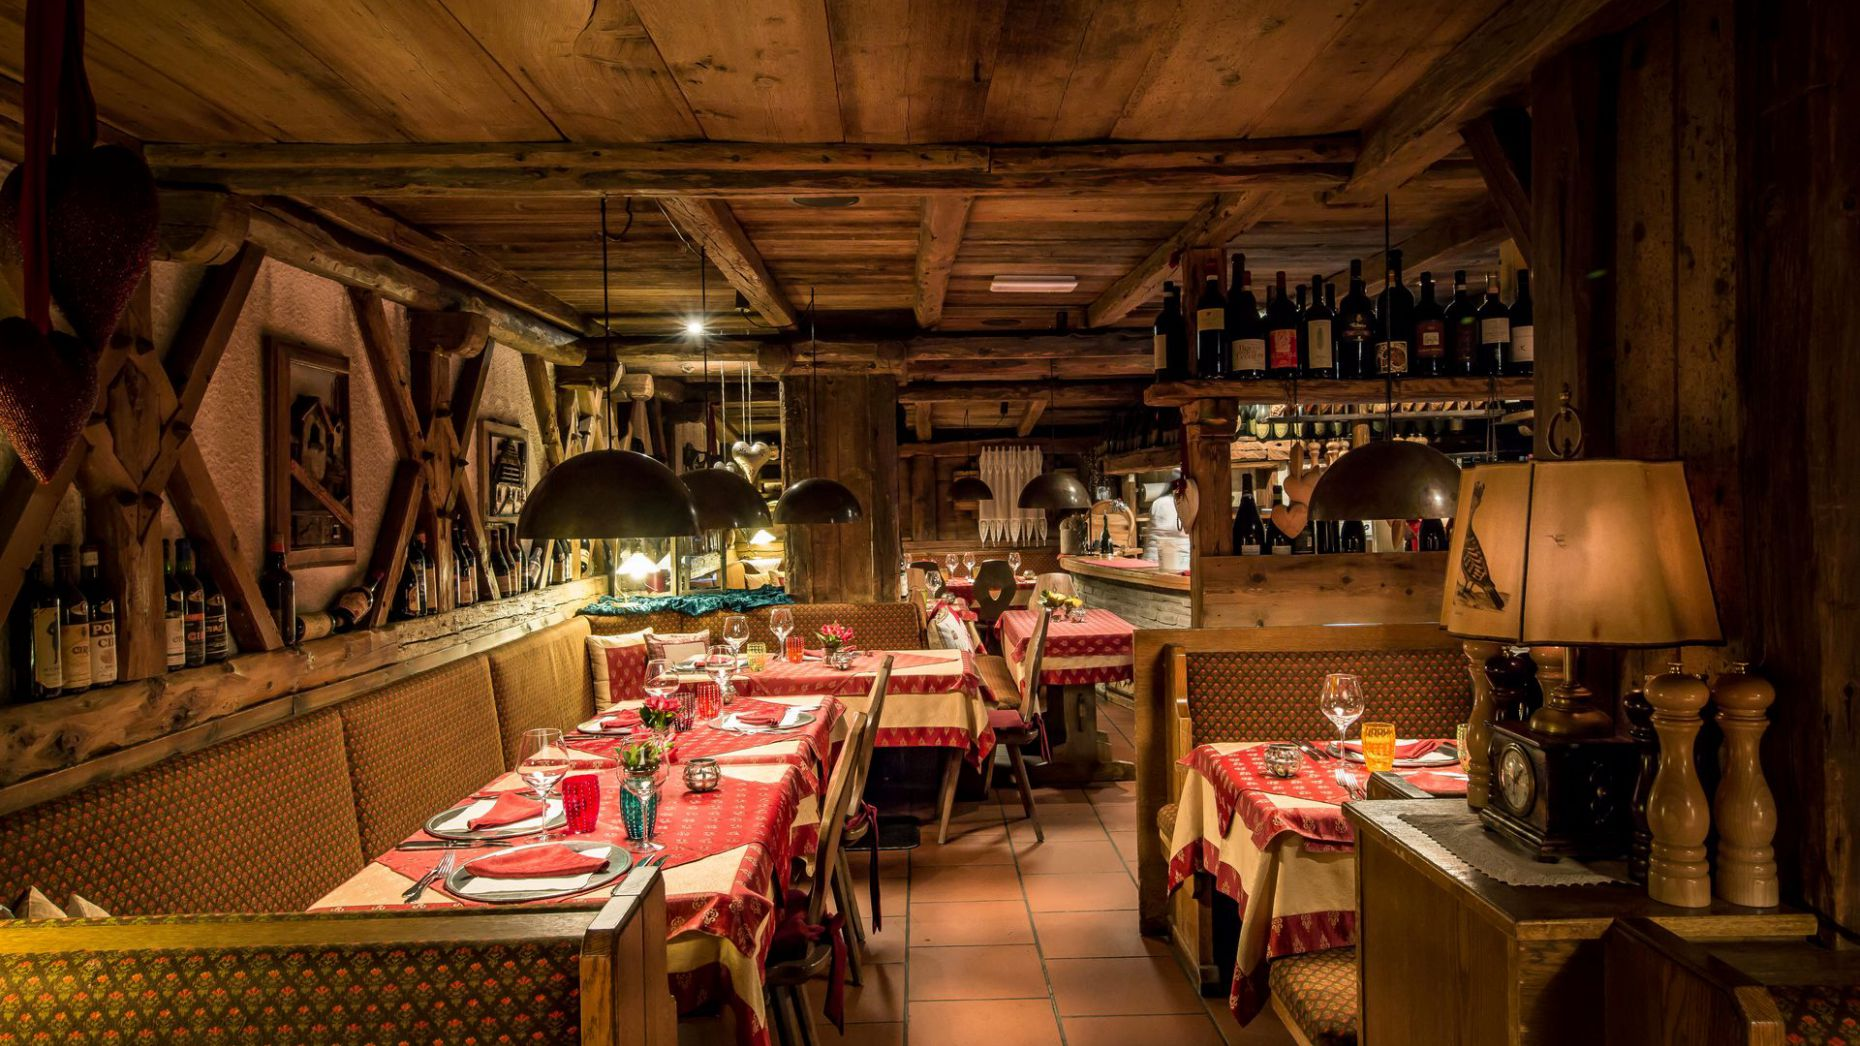 Image: Steakhouse L'Fanà